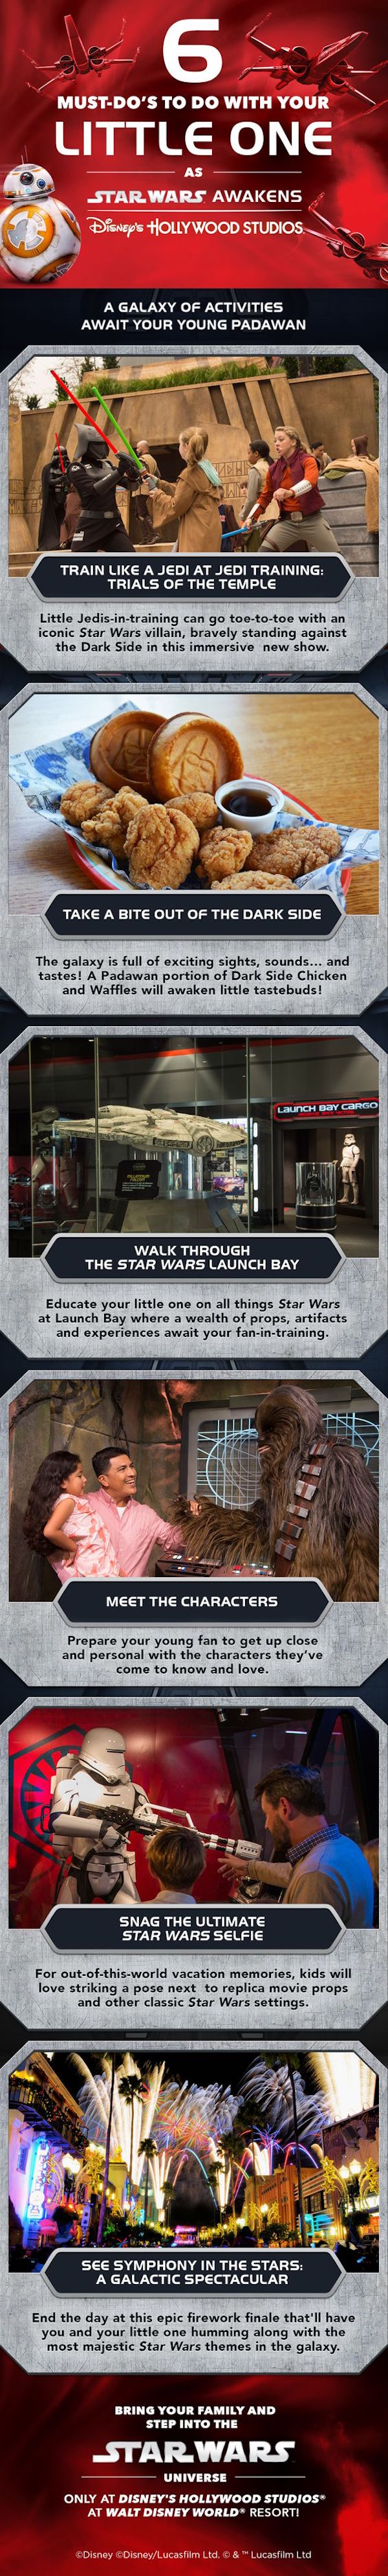 #DisneyKids: Star Wars Fun For Little Ones This Summer at Disney's Hollywood Studios